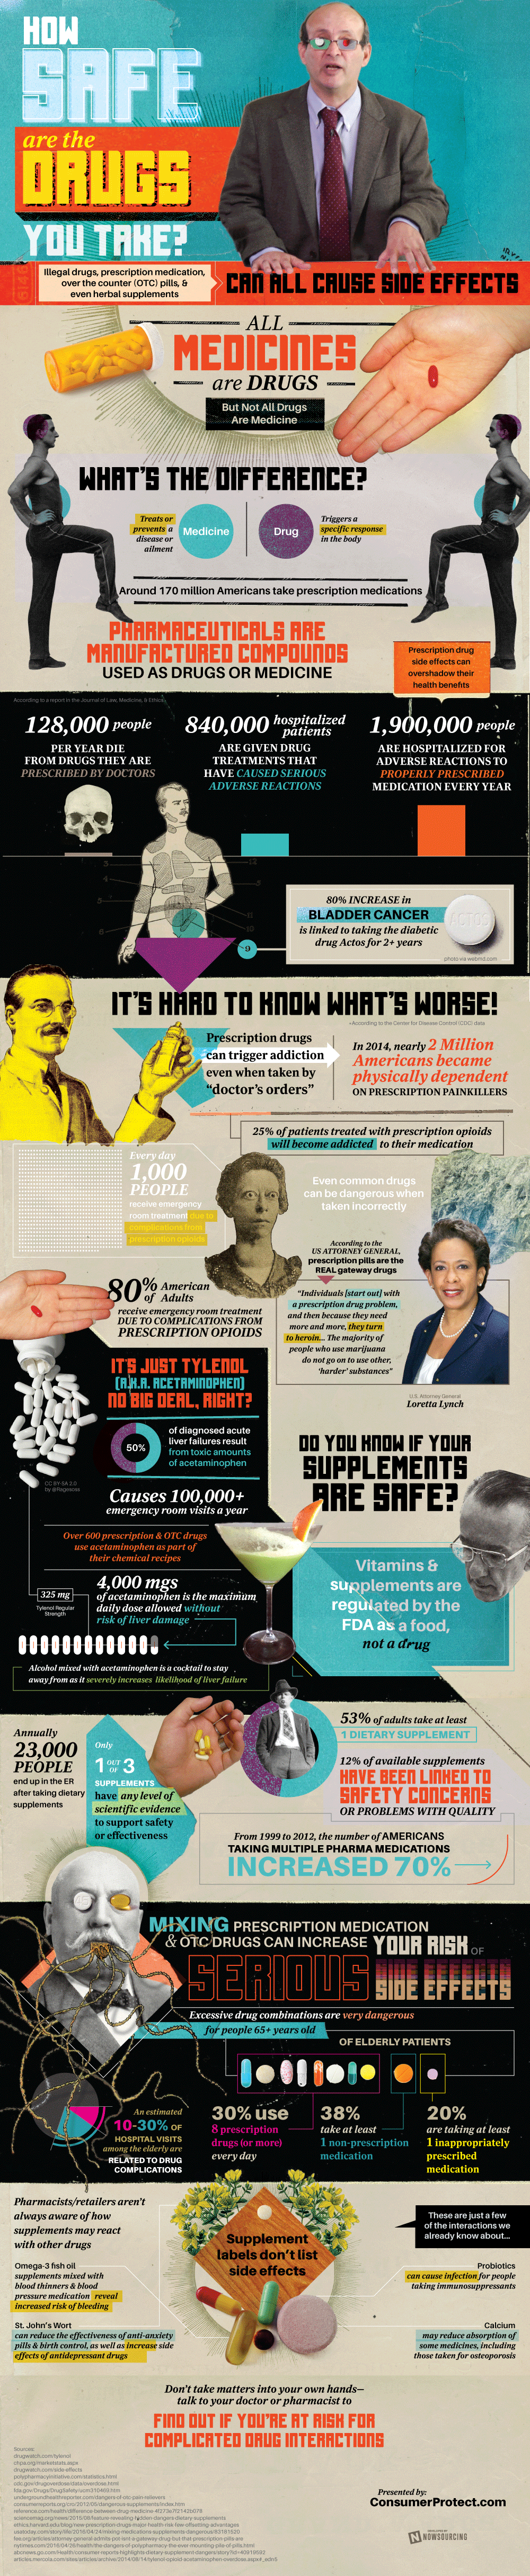 Even Prescribed Drugs Are Dangerous (Shocking News)! - Infographic